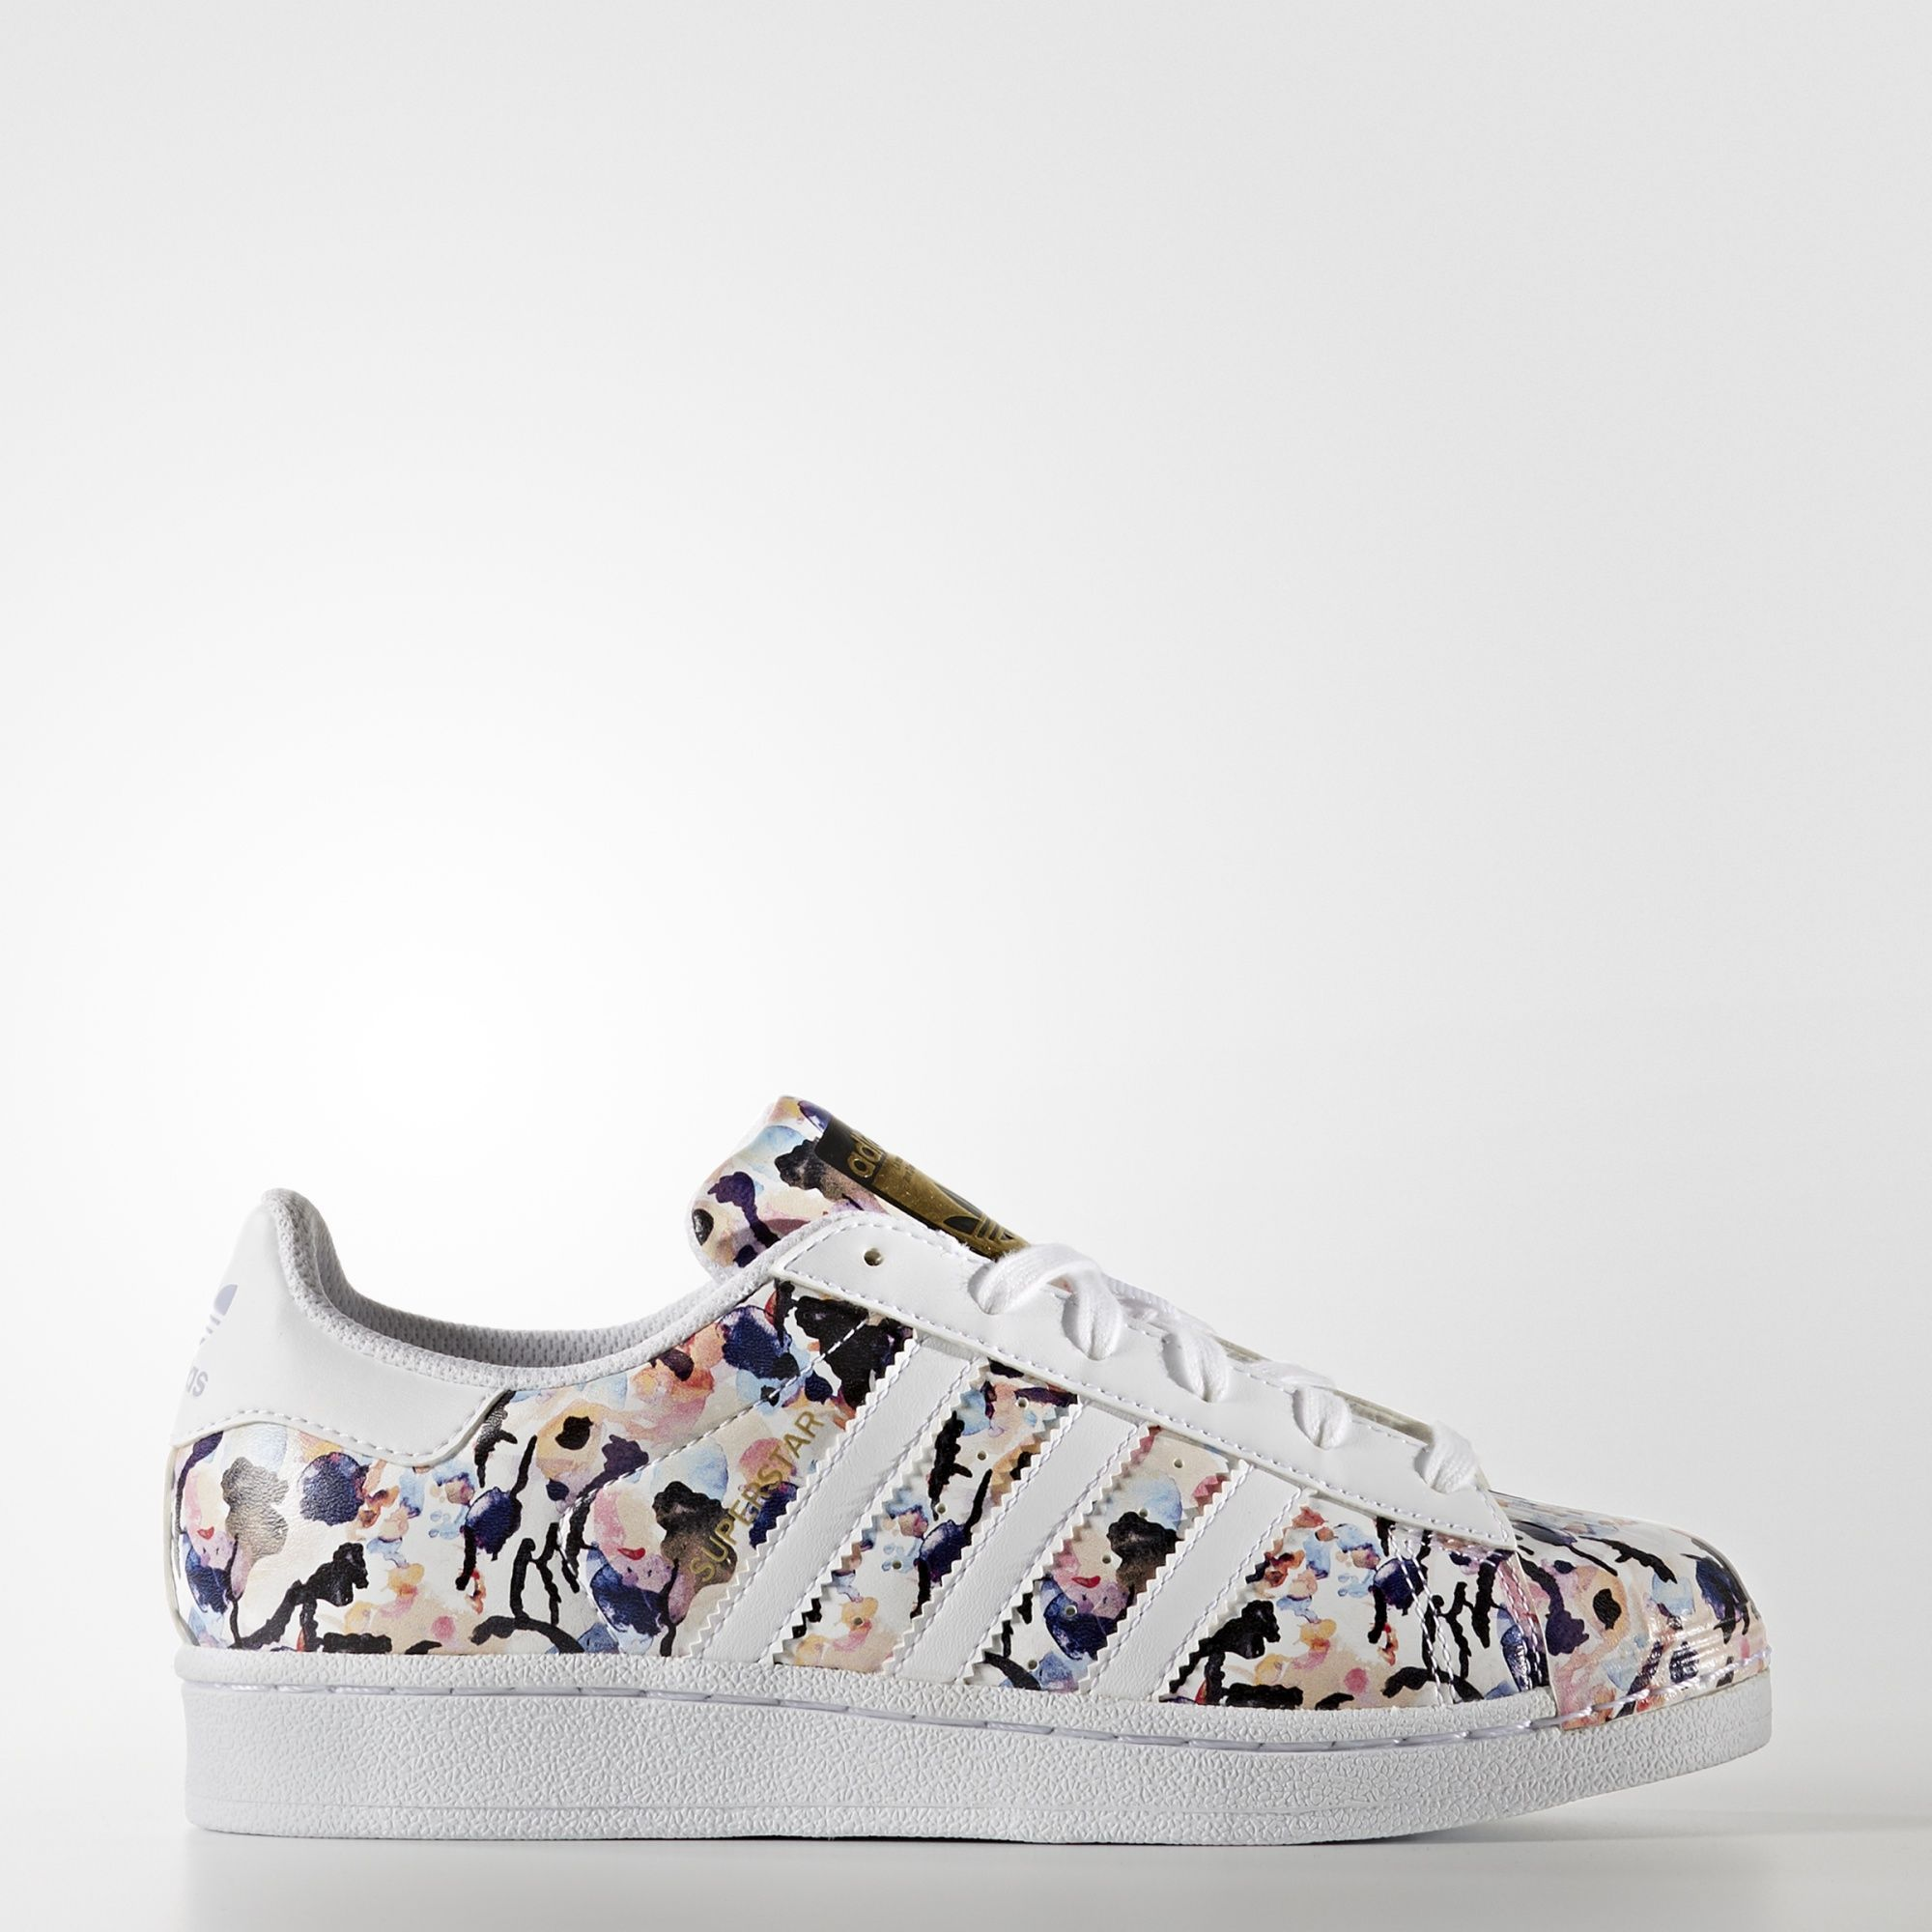 adidas - Superstar Shoes  6ff5e81d22e